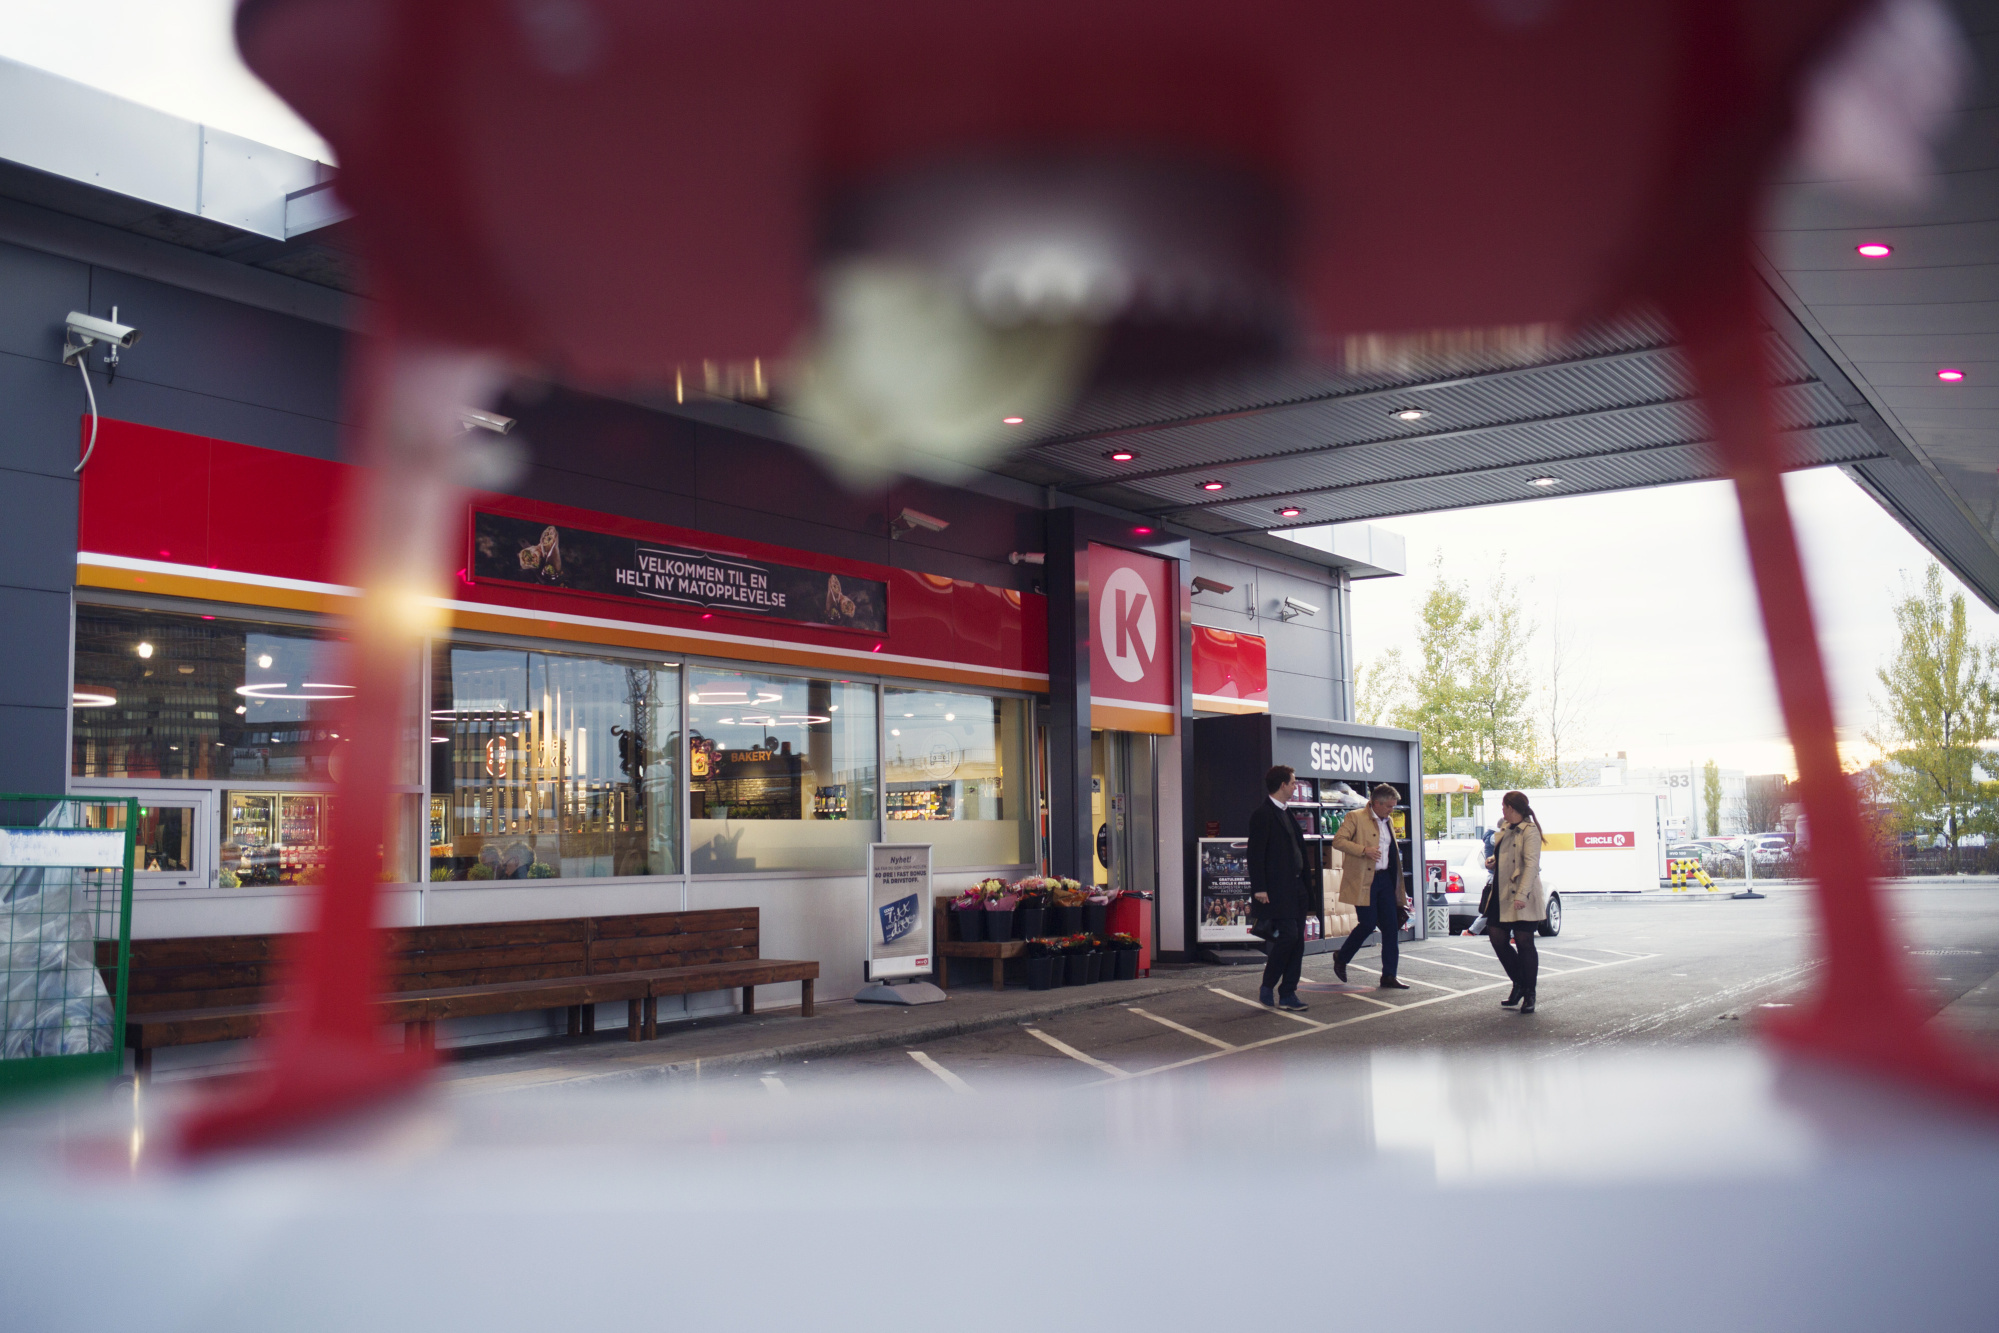 Customers exit the store at a Circle K gas station, operated by Alimentation Couche-Tard Inc., in the Oekern district of Oslo, Norway, on Tuesday, Oct. 31, 2017. Couche-Tard is using the Nordic country as a testing ground for how to respond to the electric-vehicle boom.